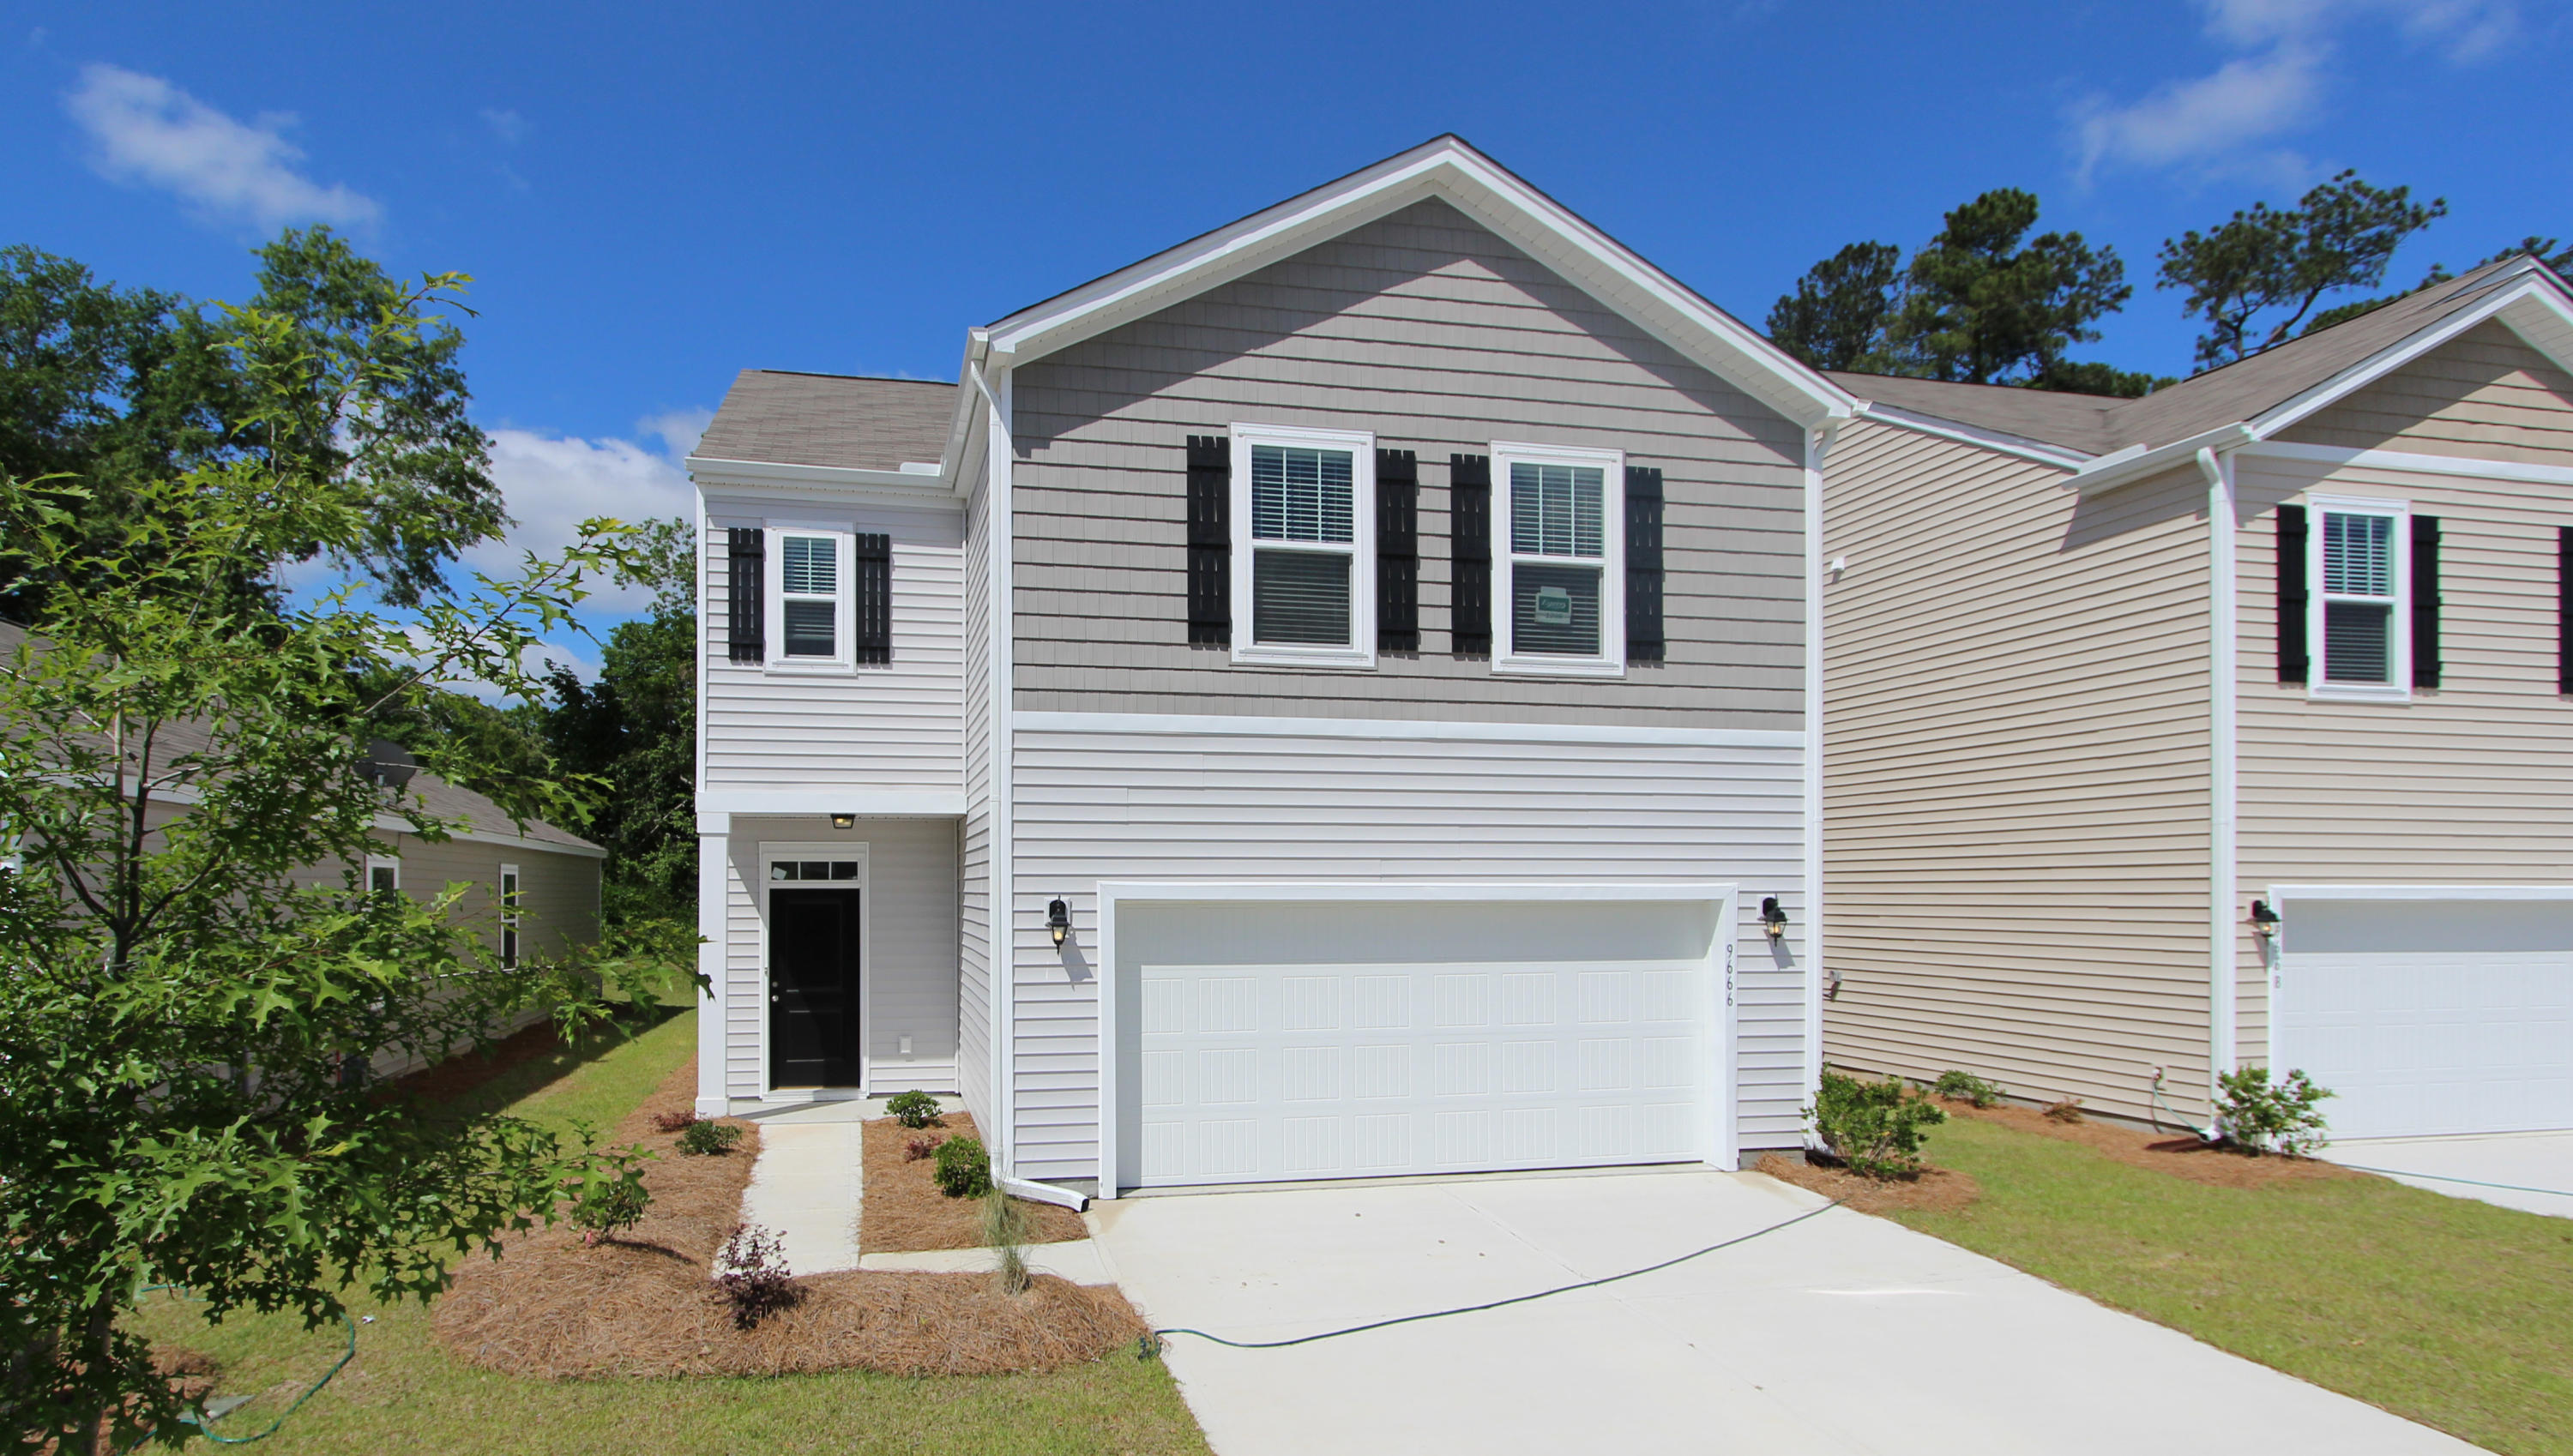 4906 Paddy Field Way Ladson, SC 29456